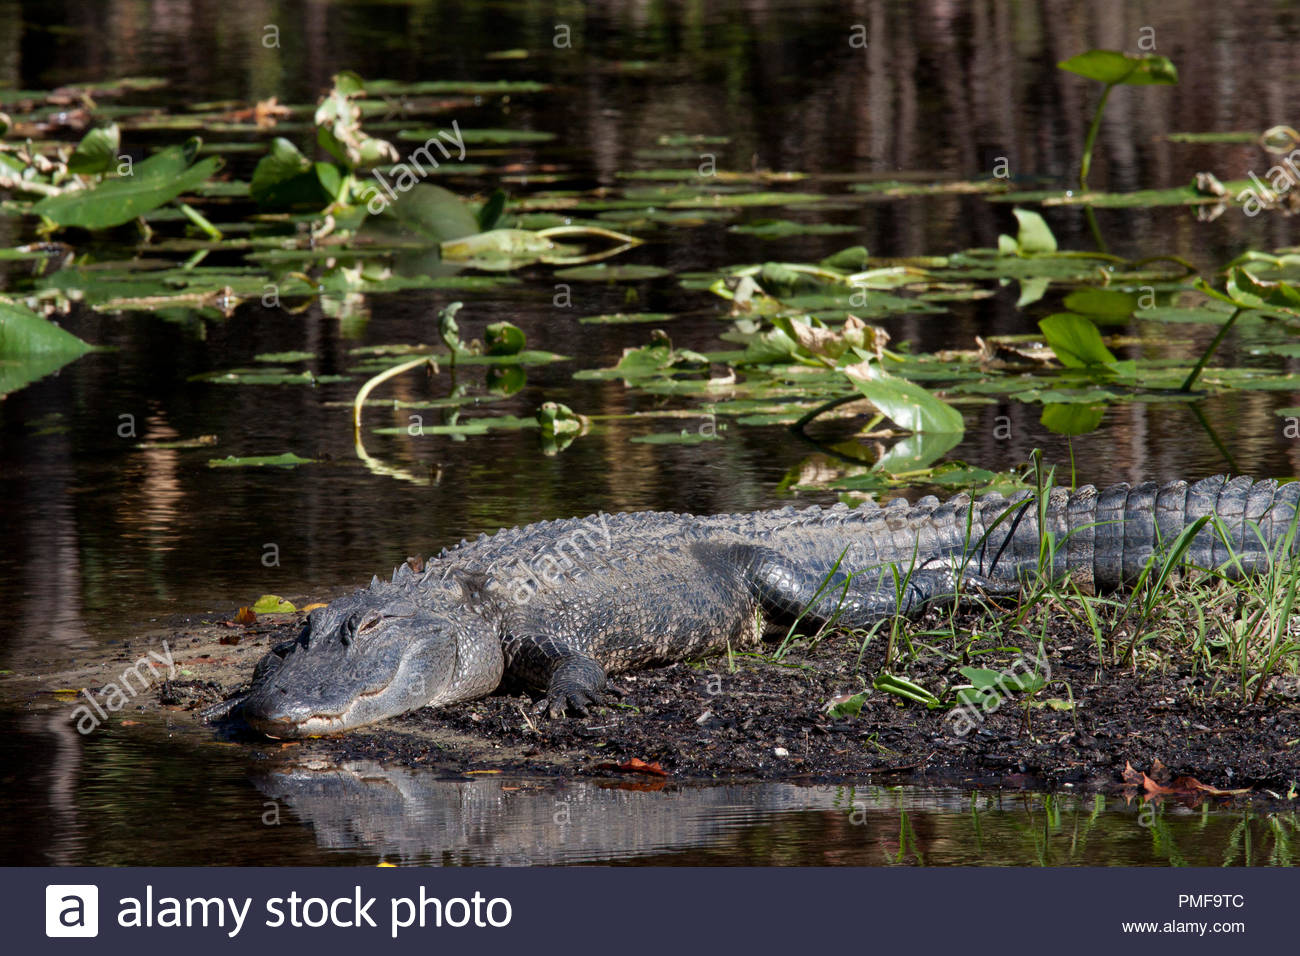 This alligator is quietly sunnig itself on a small island in Hillsborough Wilderness Park Florida - Stock Image